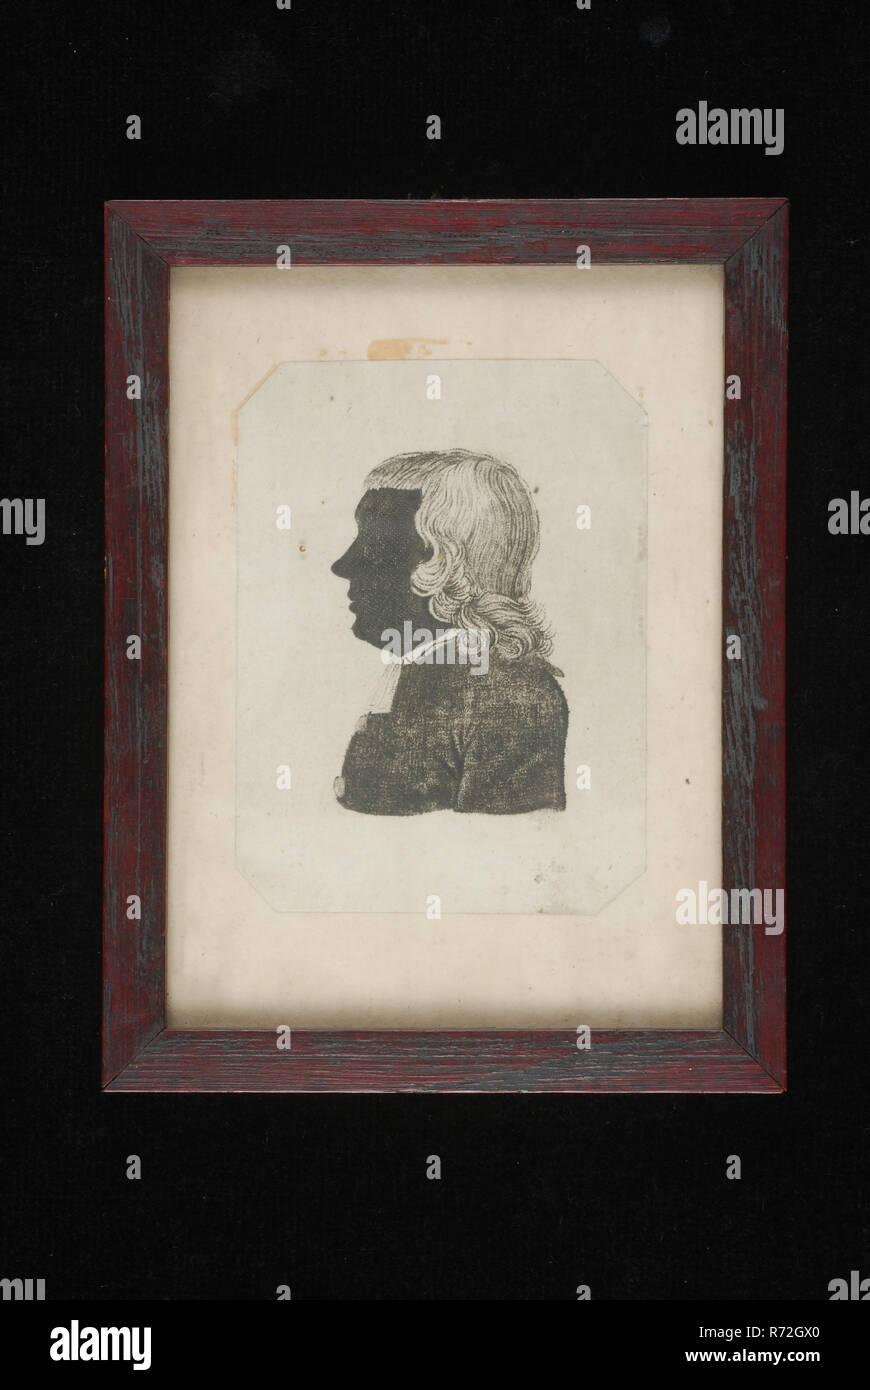 publisher: Johannes Jacobus Meyneken, Silhouette portrait to the left of Carel Philip Sander, silhouette copper engraving print picture wood glass paper, Mahogany wooden frame in portrait rectangular format inside picture of man's portrait; rectangular but with bevelled corners. Flat glass plate hanging eye reverse side with cardboard silhouette Carel Philip Sander preacher reverend church Evangelical Lutheran Municipality migration Rotterdam - Stock Image